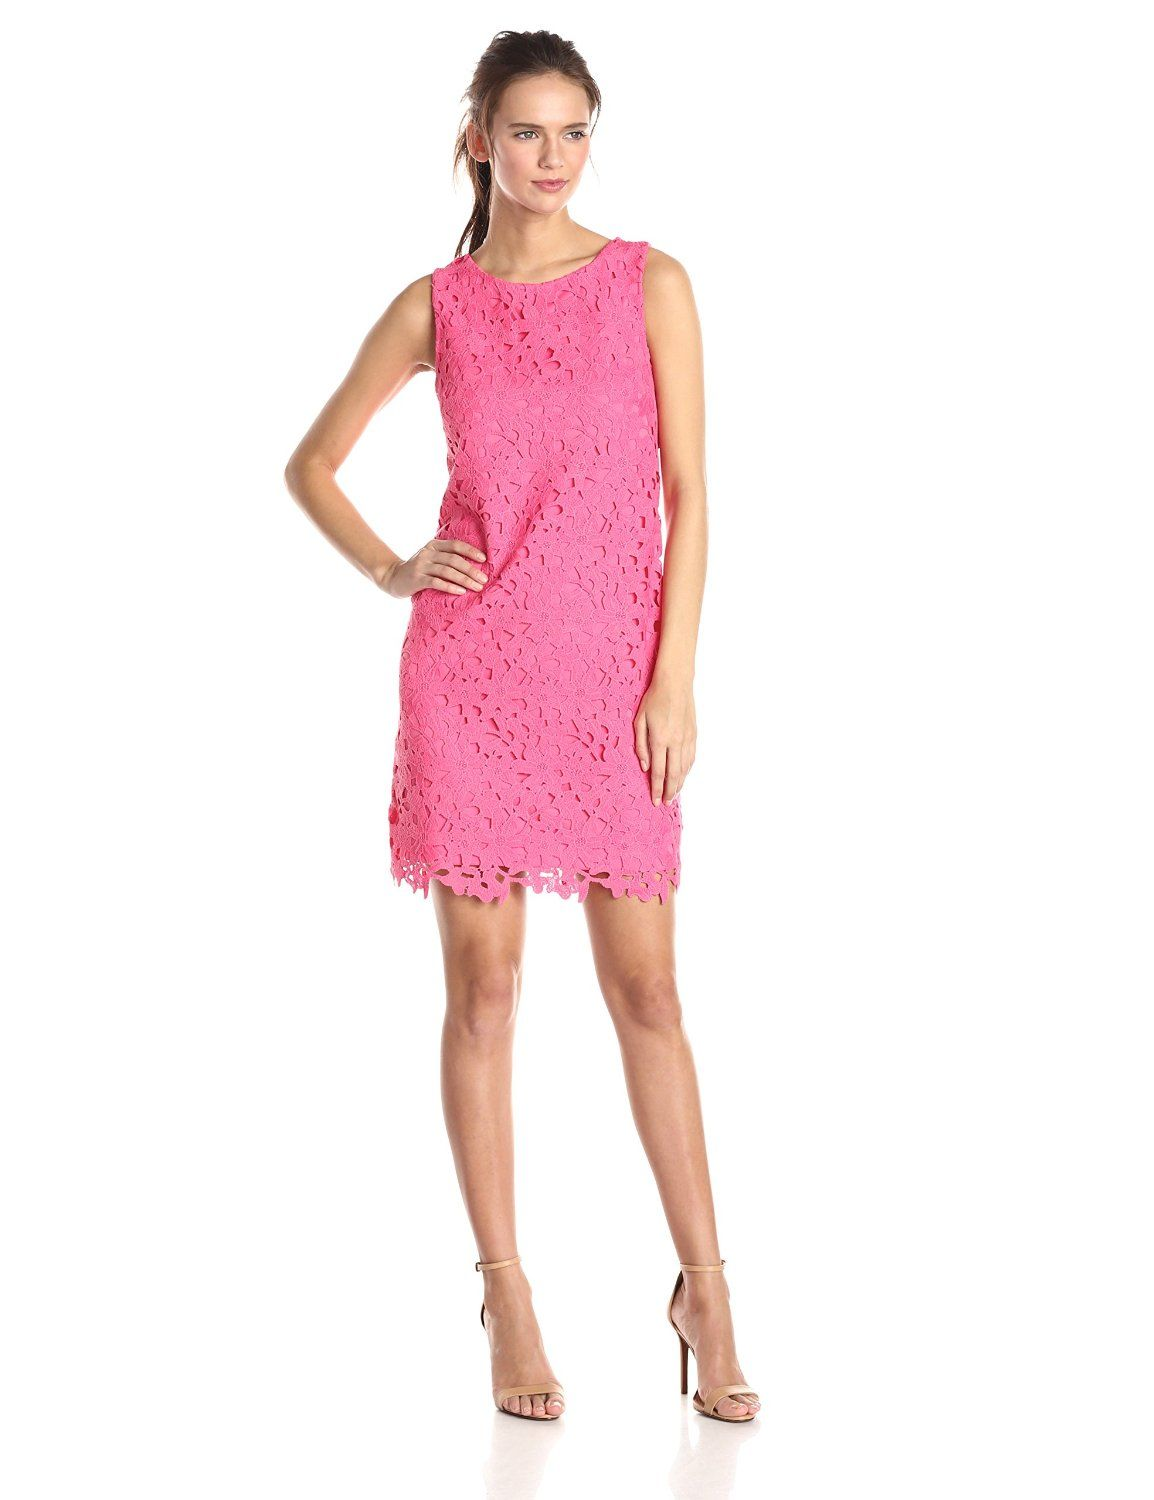 Lace Dress by Jessica Simpson